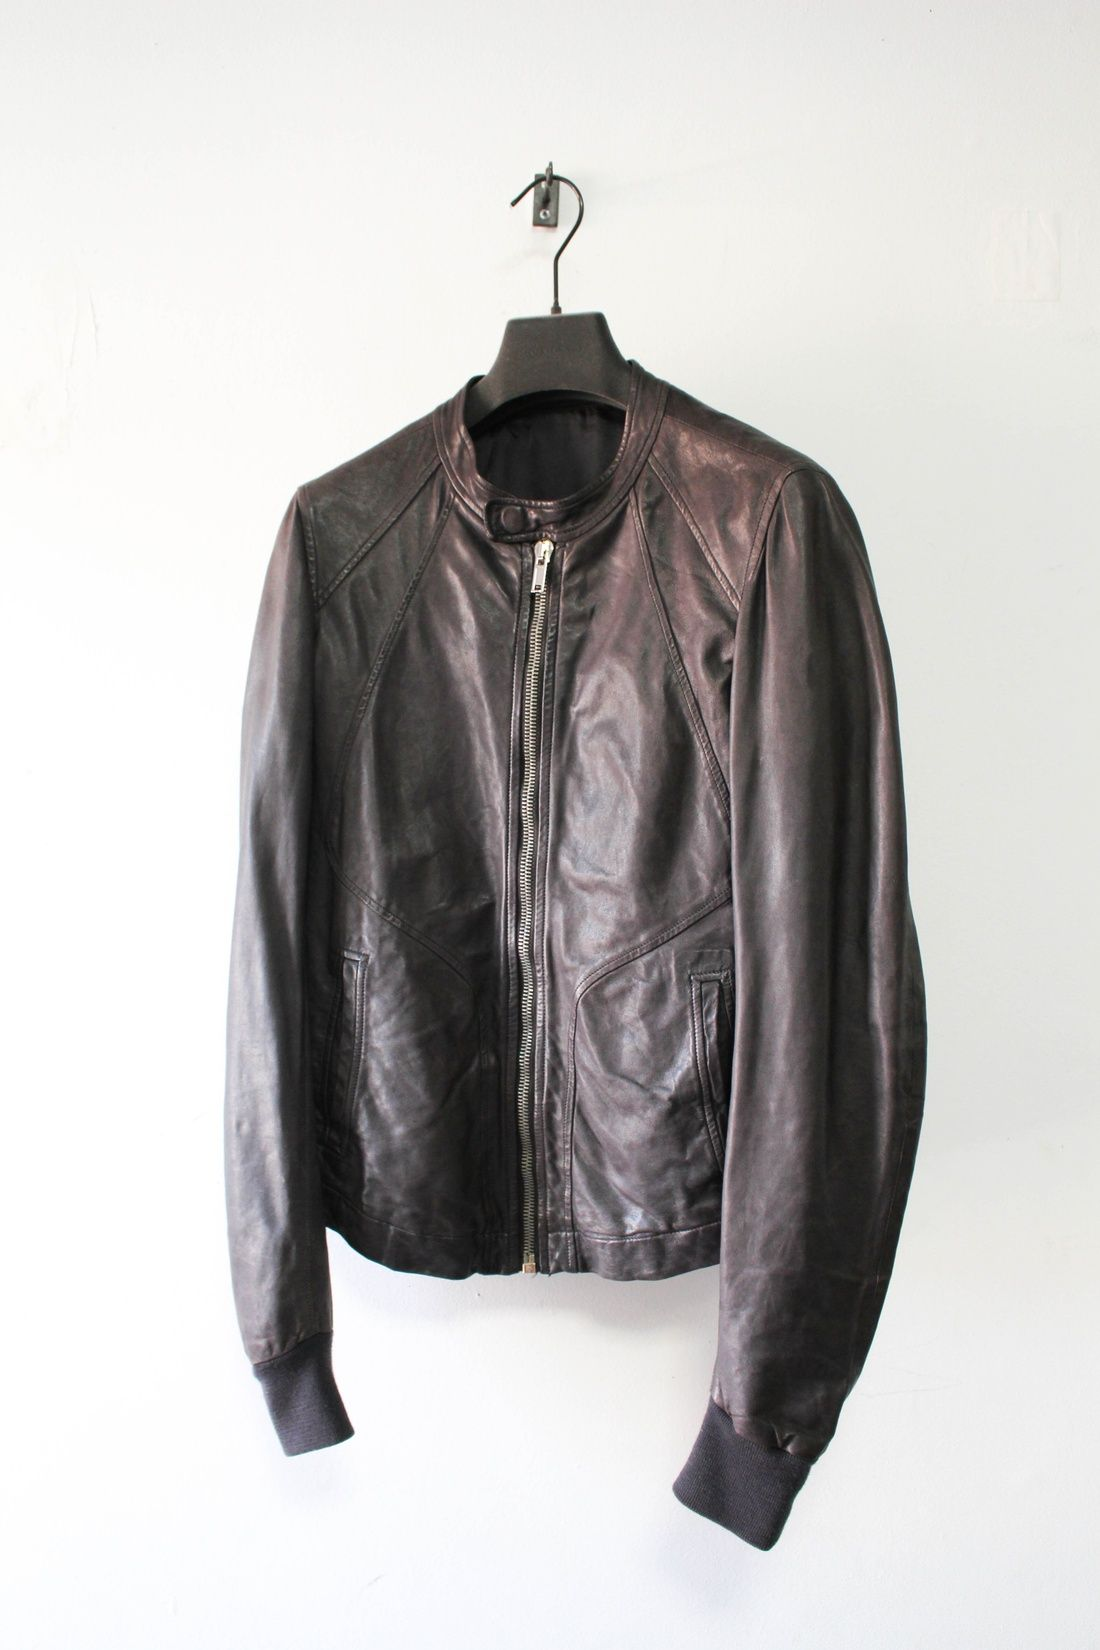 Rick Owens Ss10 Leather Intarsia Jacket Size S 386